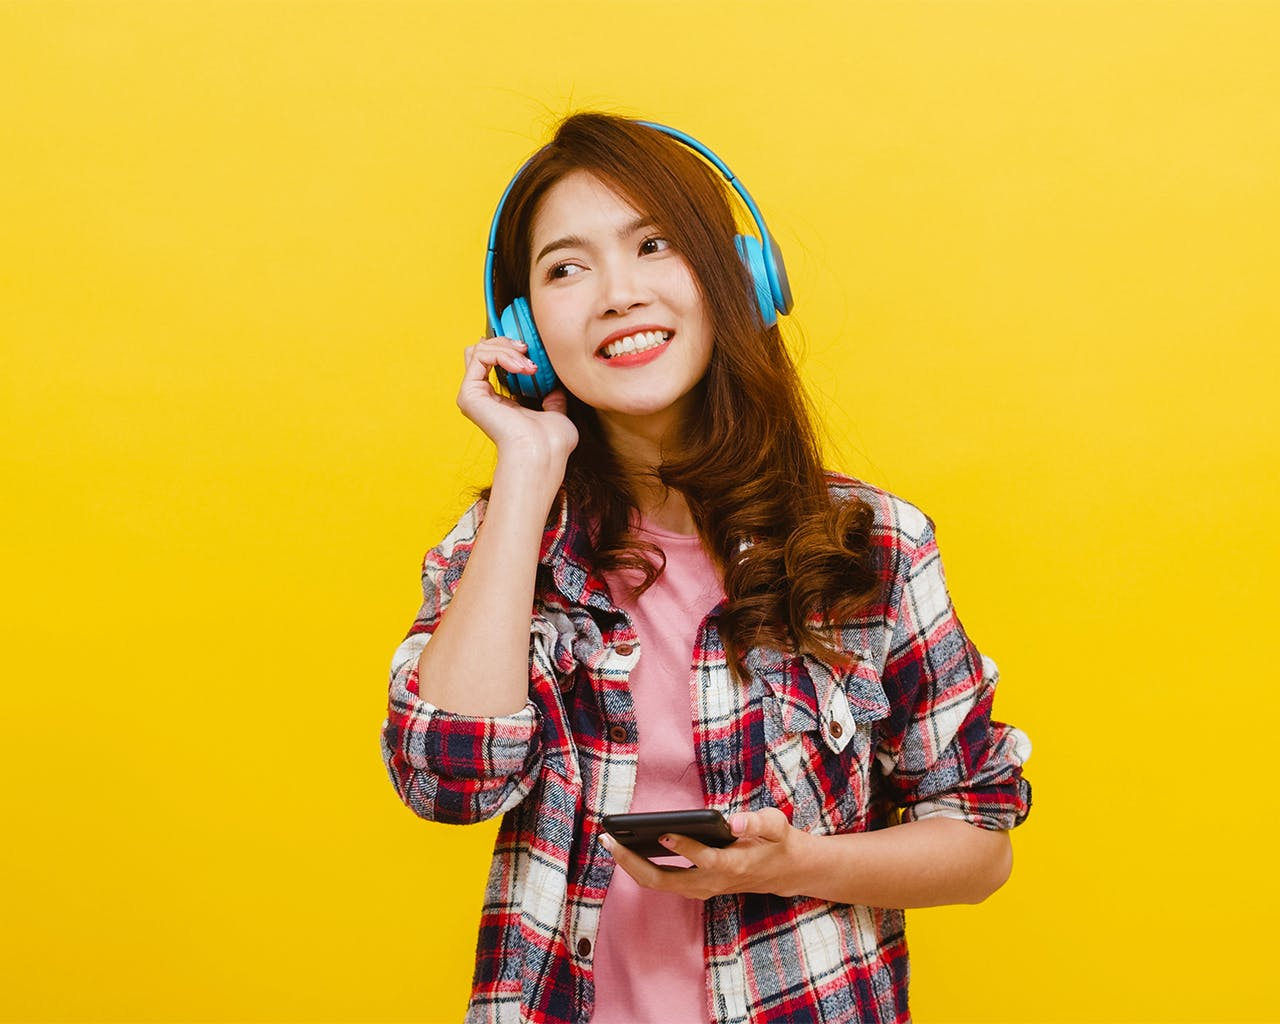 5 Karaoke Phone Apps That Let You Perform Duets With Friends